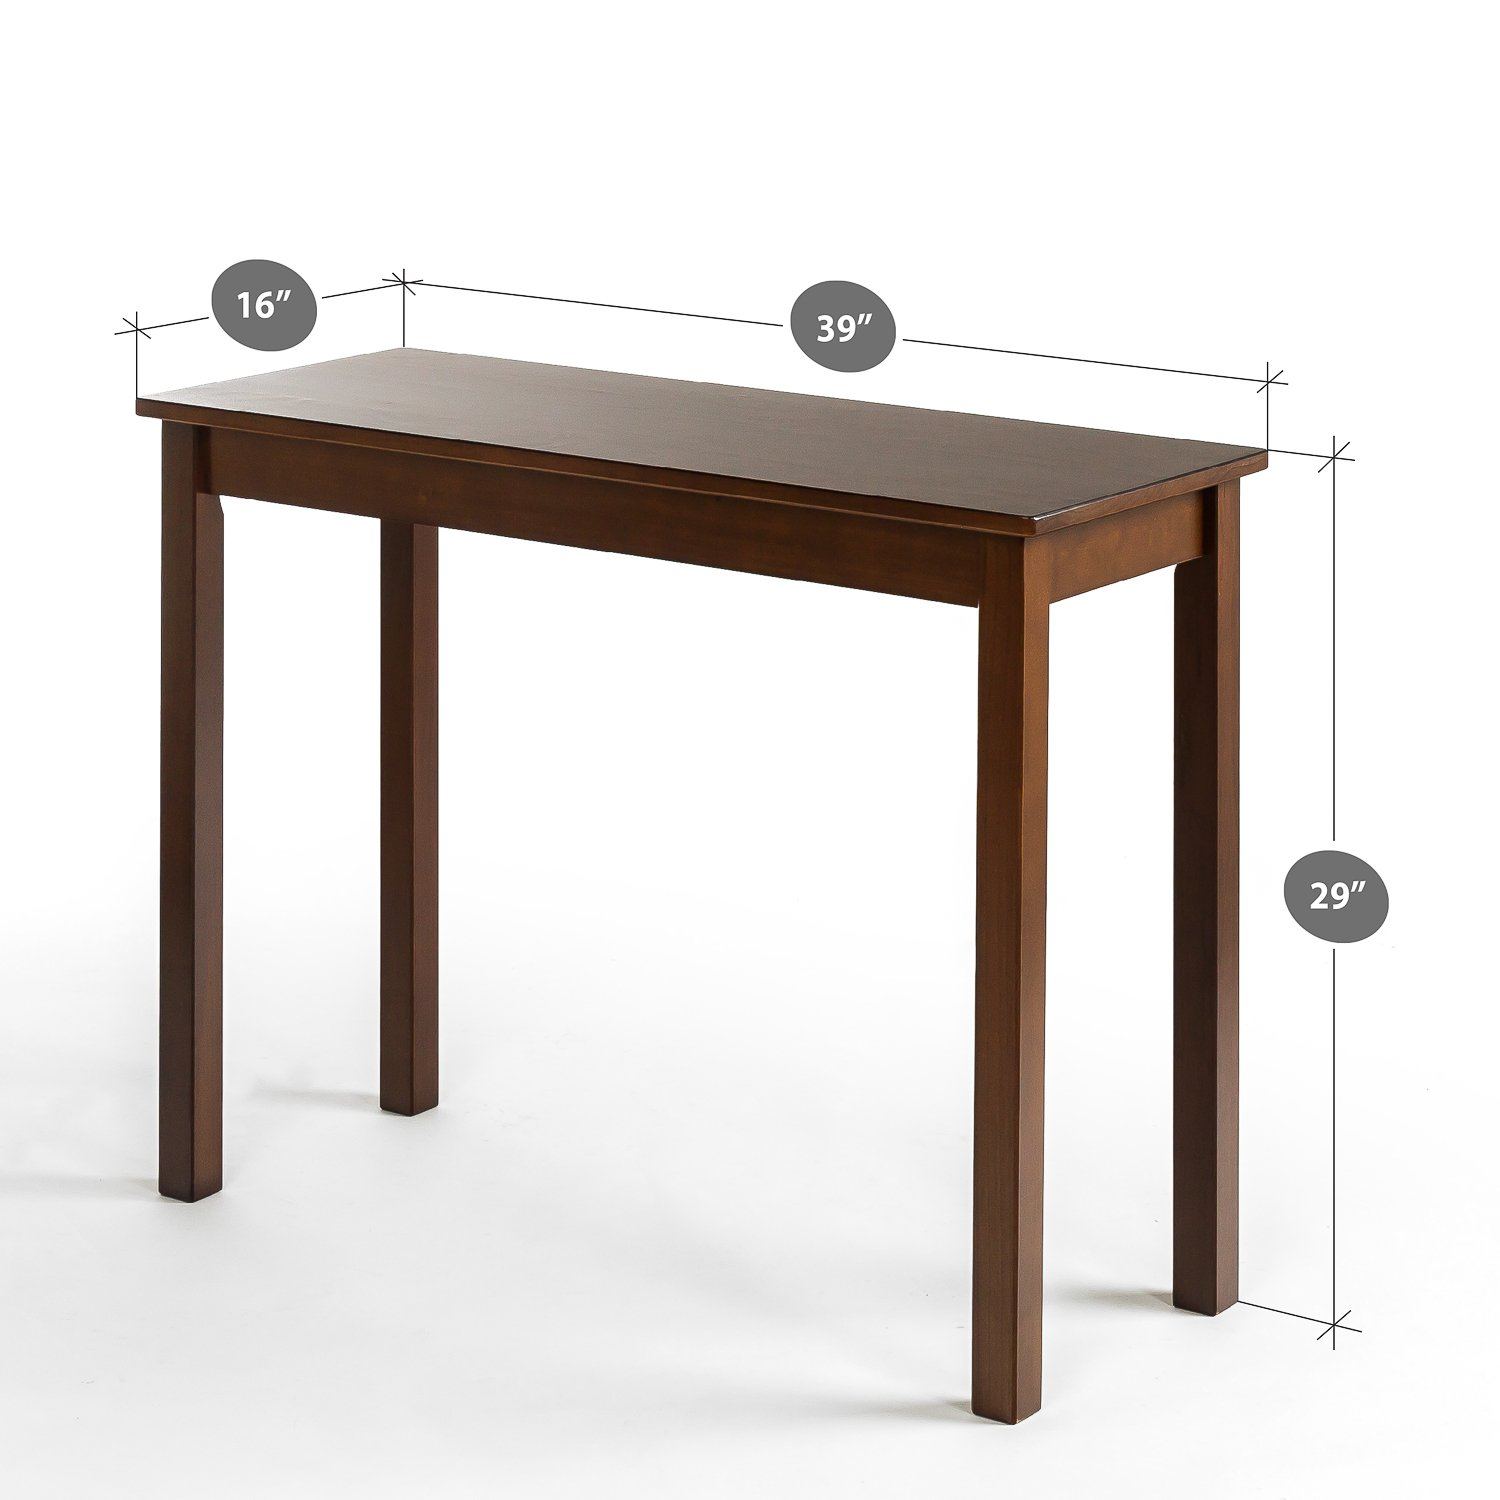 Zinus Espresso Wood Console Table